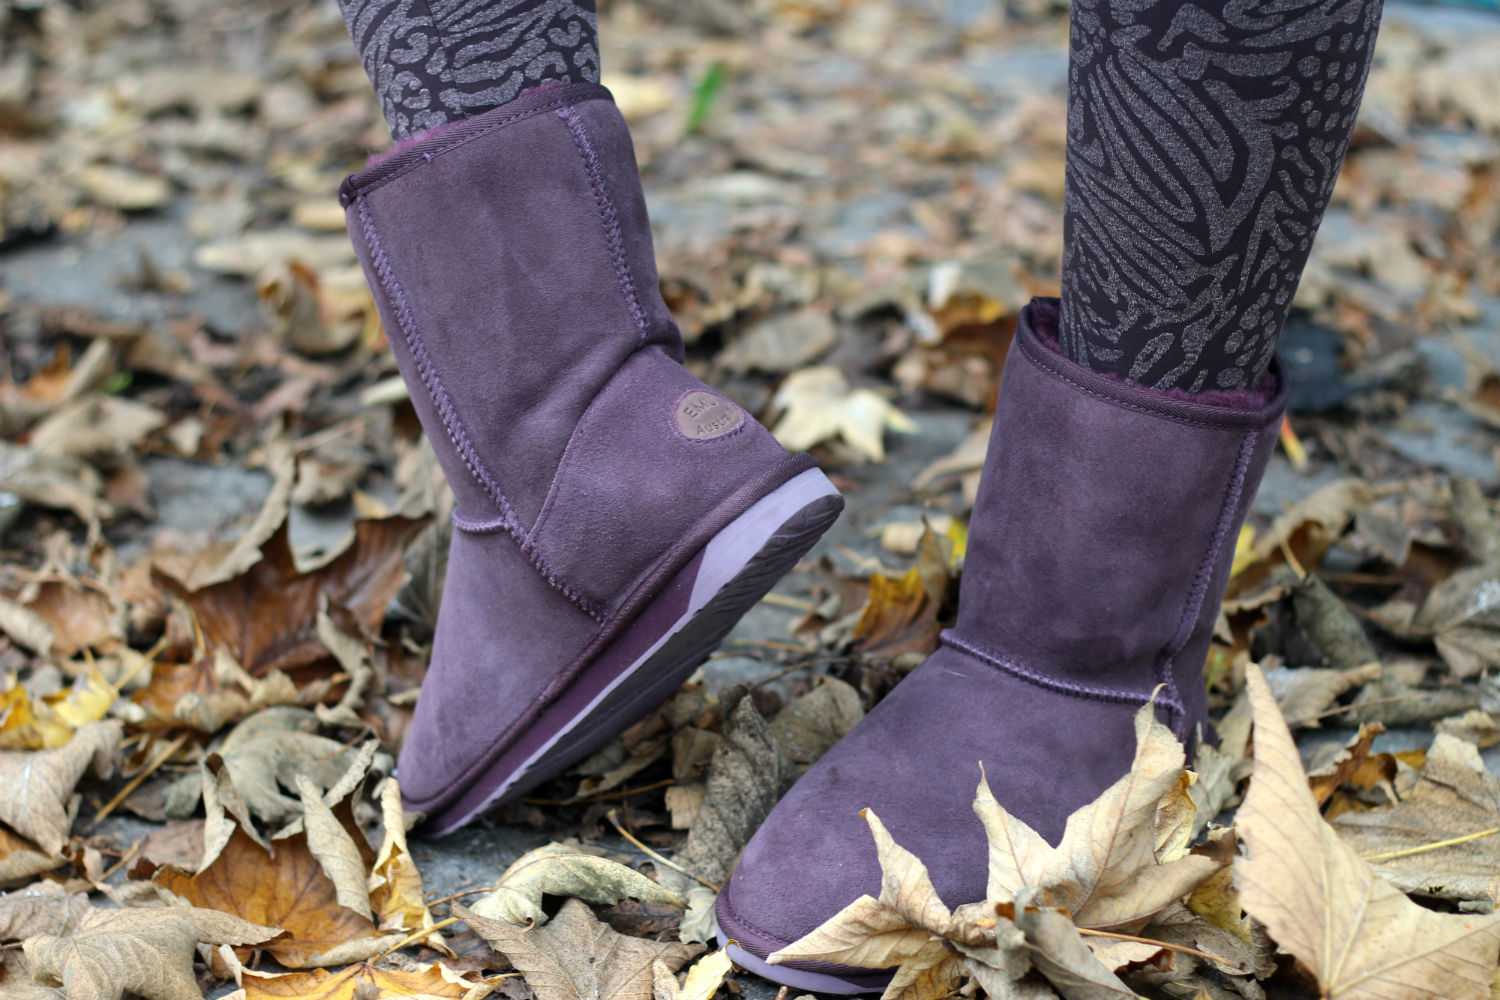 stivali EMU- moda boot 2016 inverno - fashion must have inverno